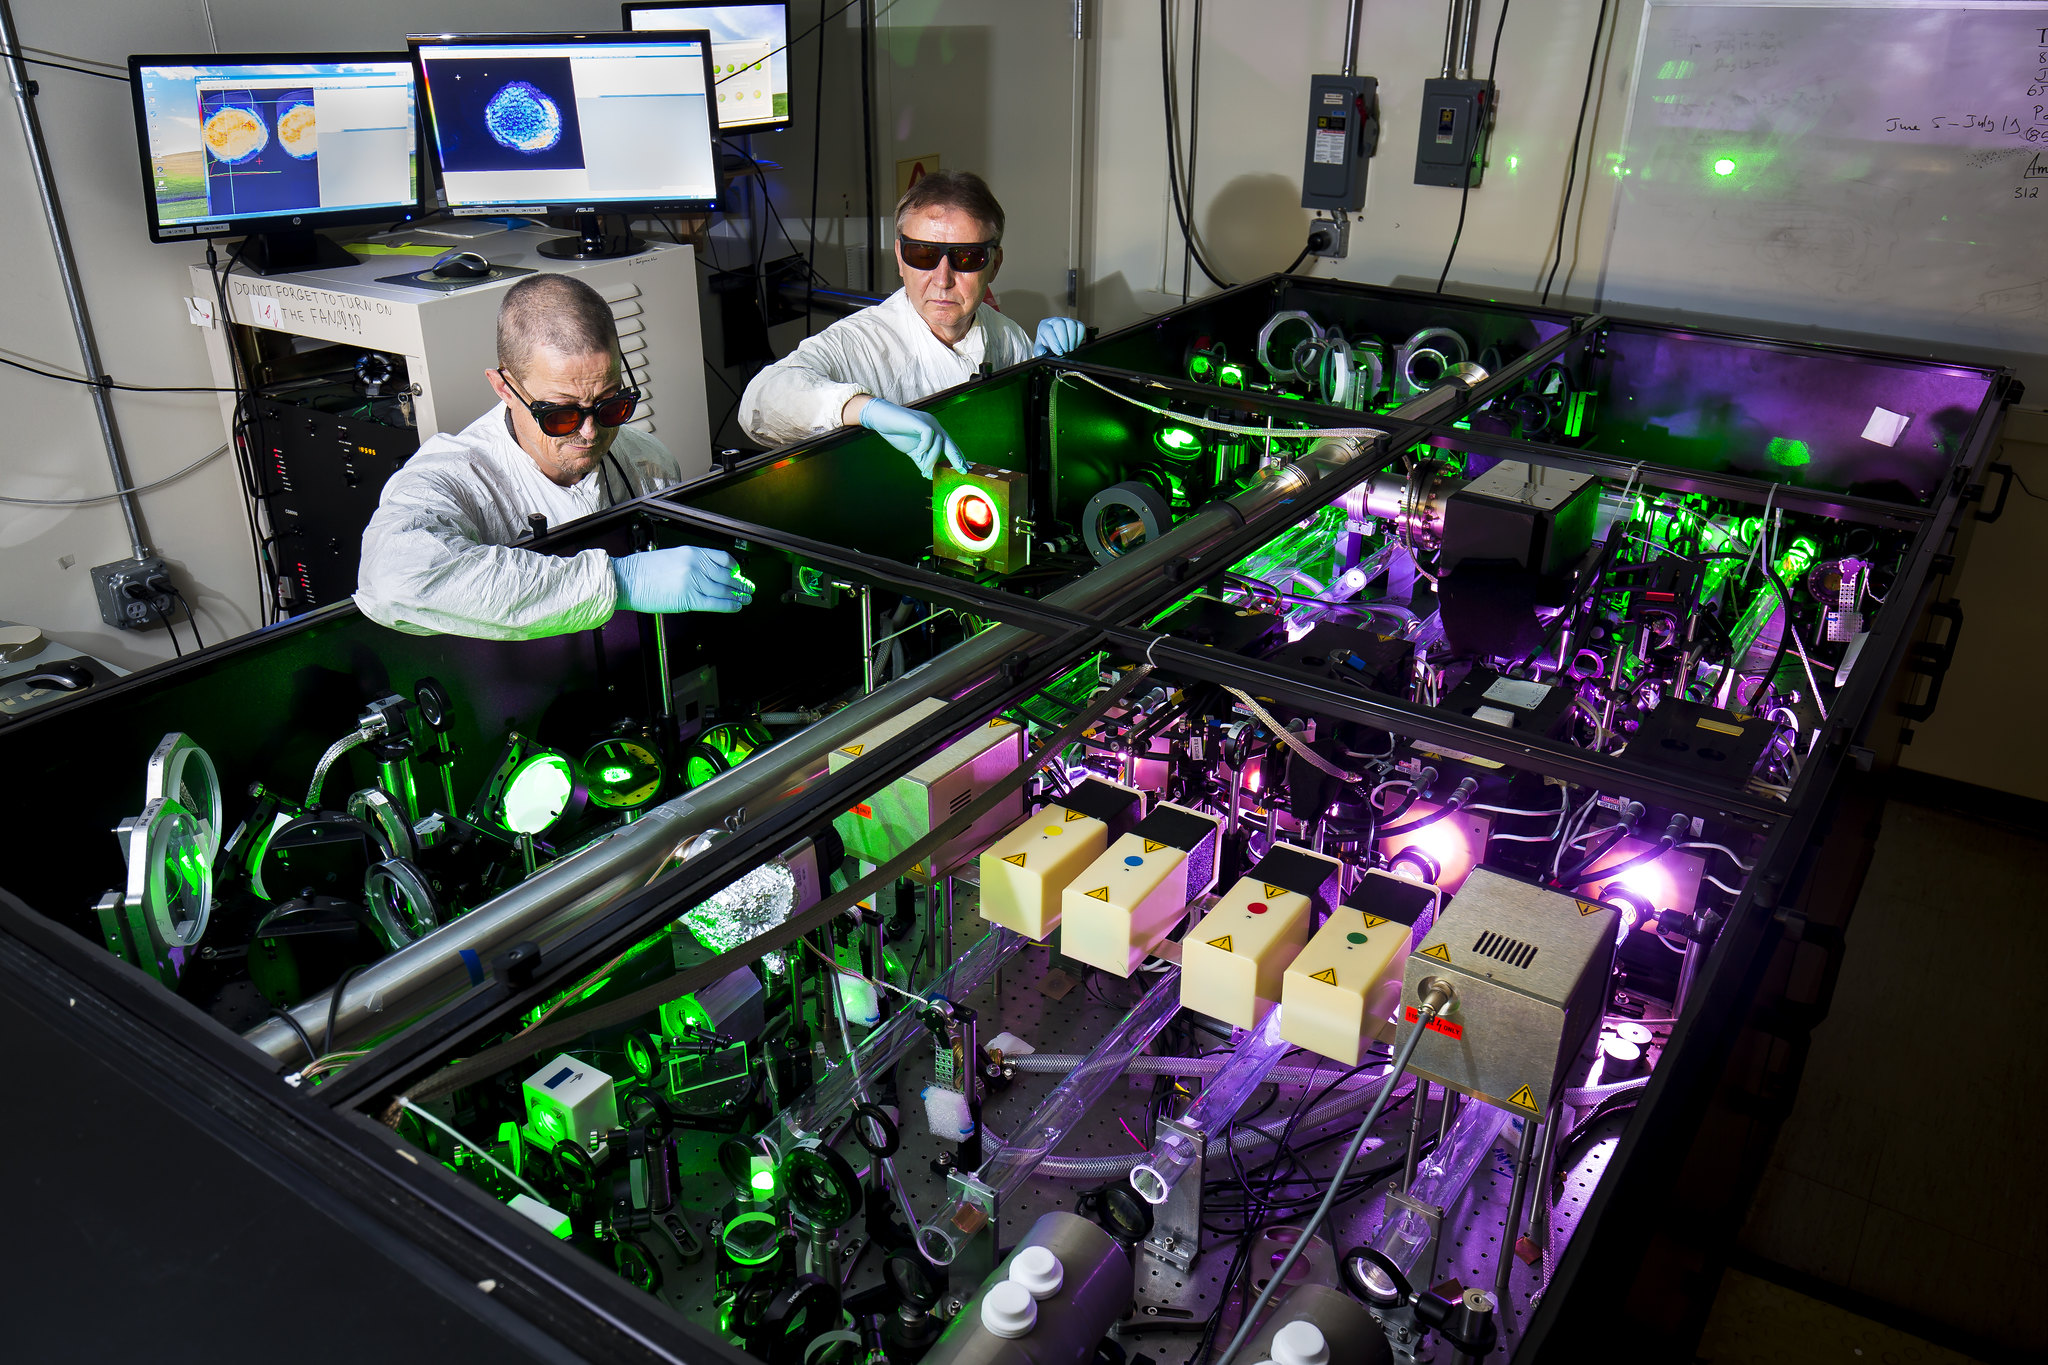 Anatoly Maksimchuk, EECS Research Scientist, and John Nees, EECS Associate Research Scientist, demonstrate use of the HERCULES 300 TW laser. Image credit: Joseph Xu, College of Engineering